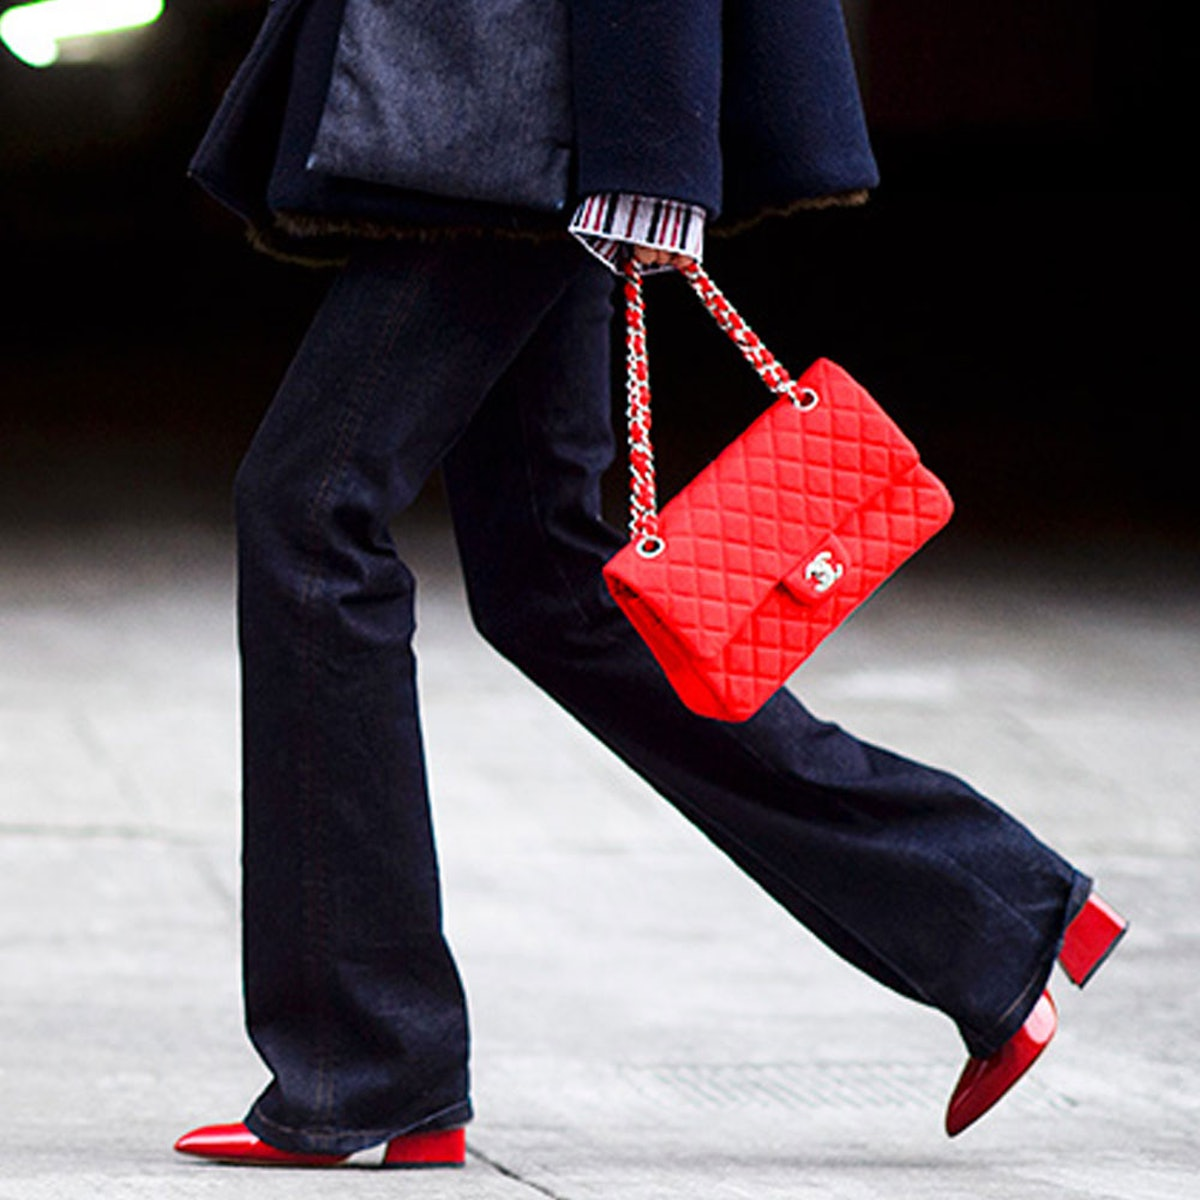 These Are The Most Popular Handbags Of All Time